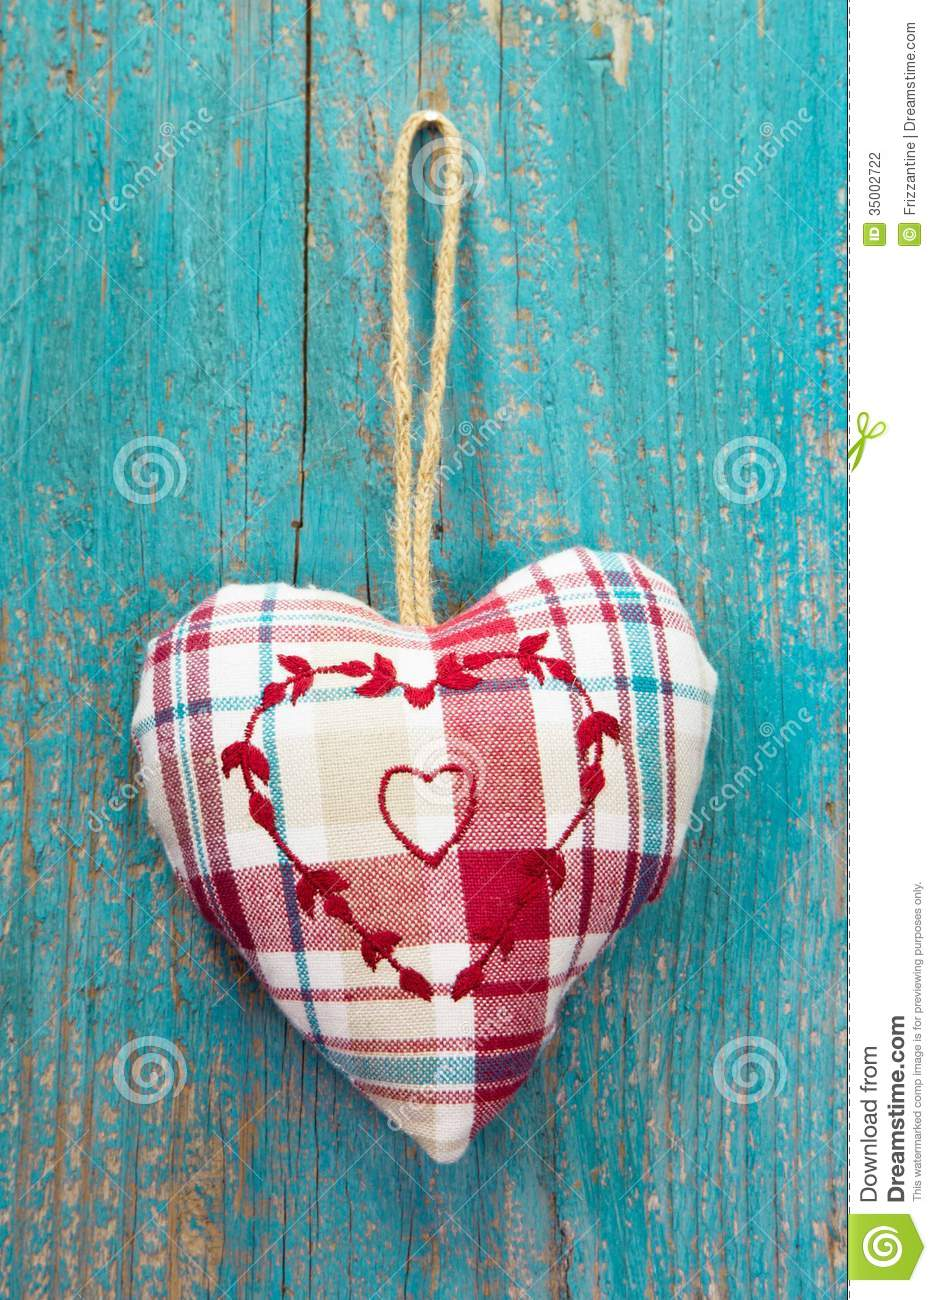 Rustic Heart On Turquoise Wooden Surface For Wedding